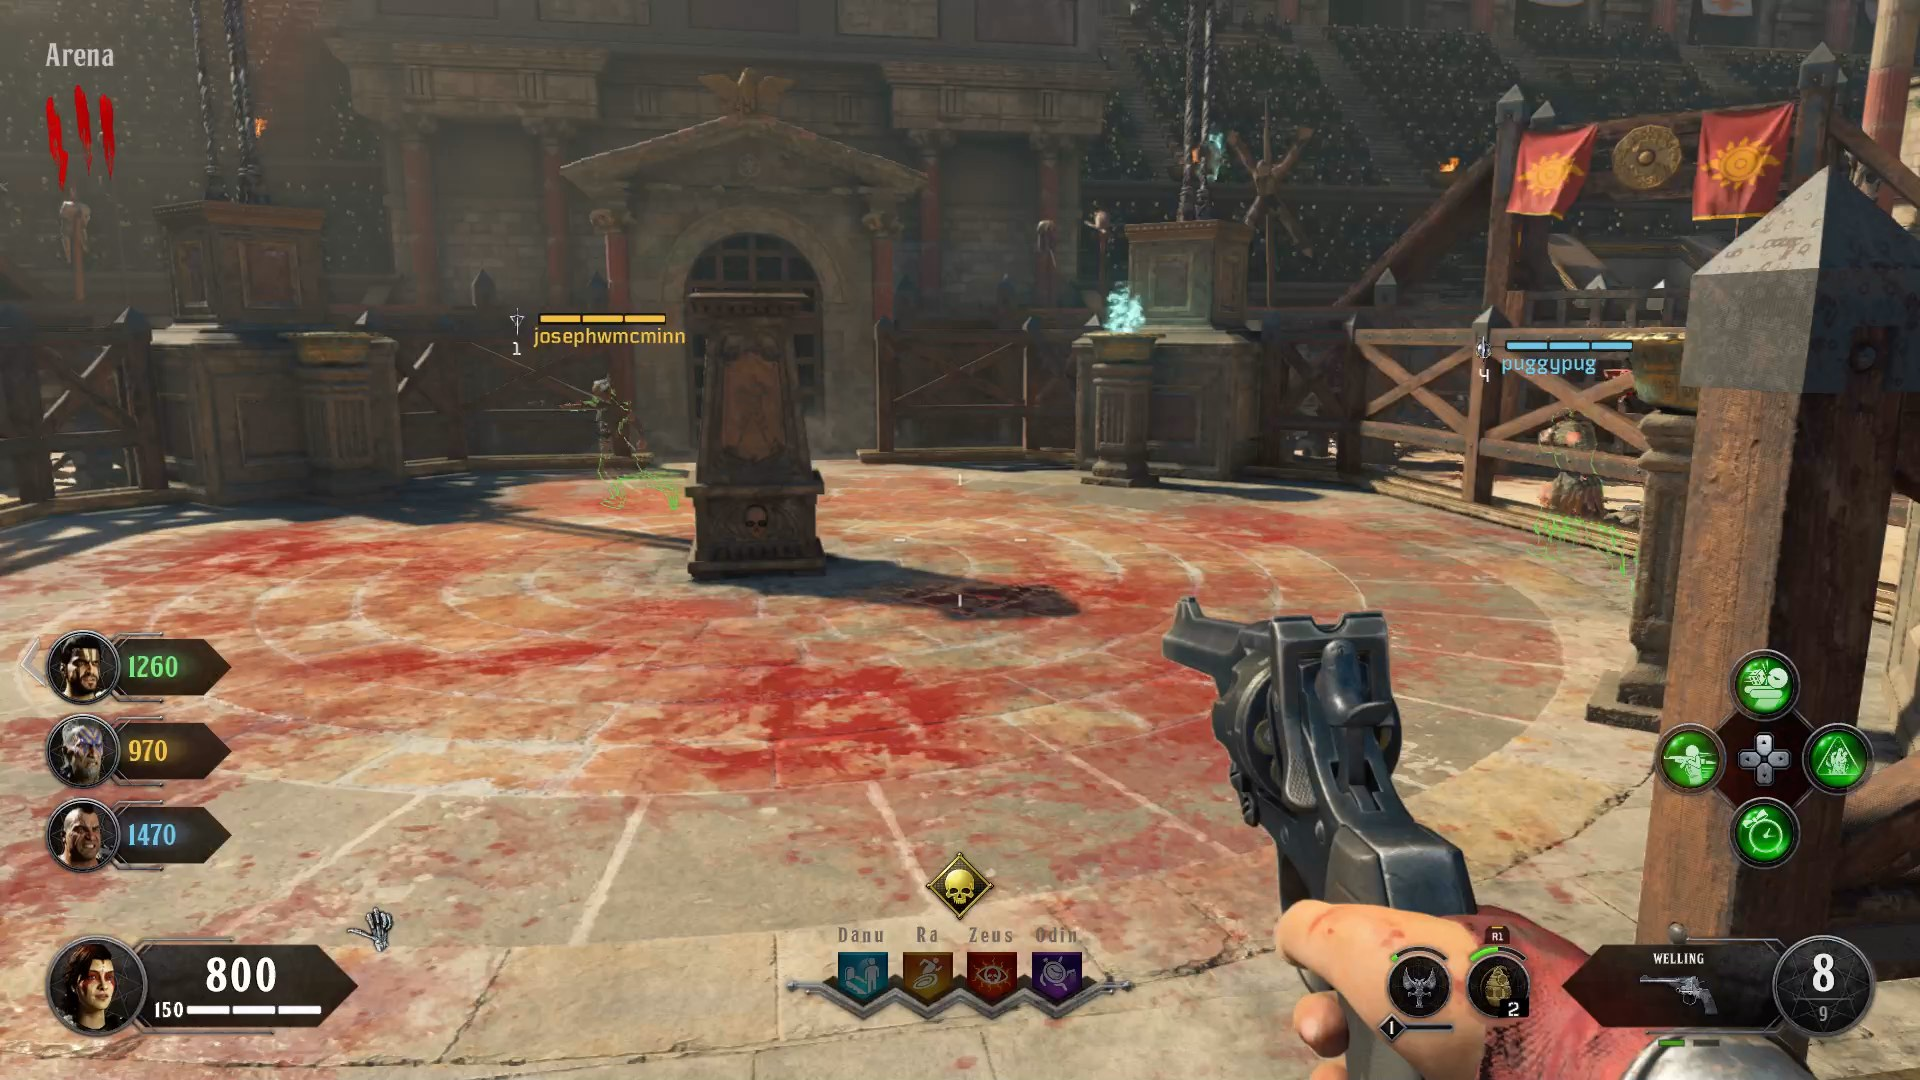 Black Ops 4 IX Zombies Pack-a-Punch Guide - How to Unlock ... on black ops zombies 5 map, black ops 2nd map pack, future black ops map pack, black ops nazi zombies maps, black ops rezurrection map pack, nuketown zombies map pack, black ops zombies maps list, black ops zombie map names, black ops escalation map pack, black ops revolution map pack, black ops infected map pack, call of duty black ops 2 zombies new zombie pack,